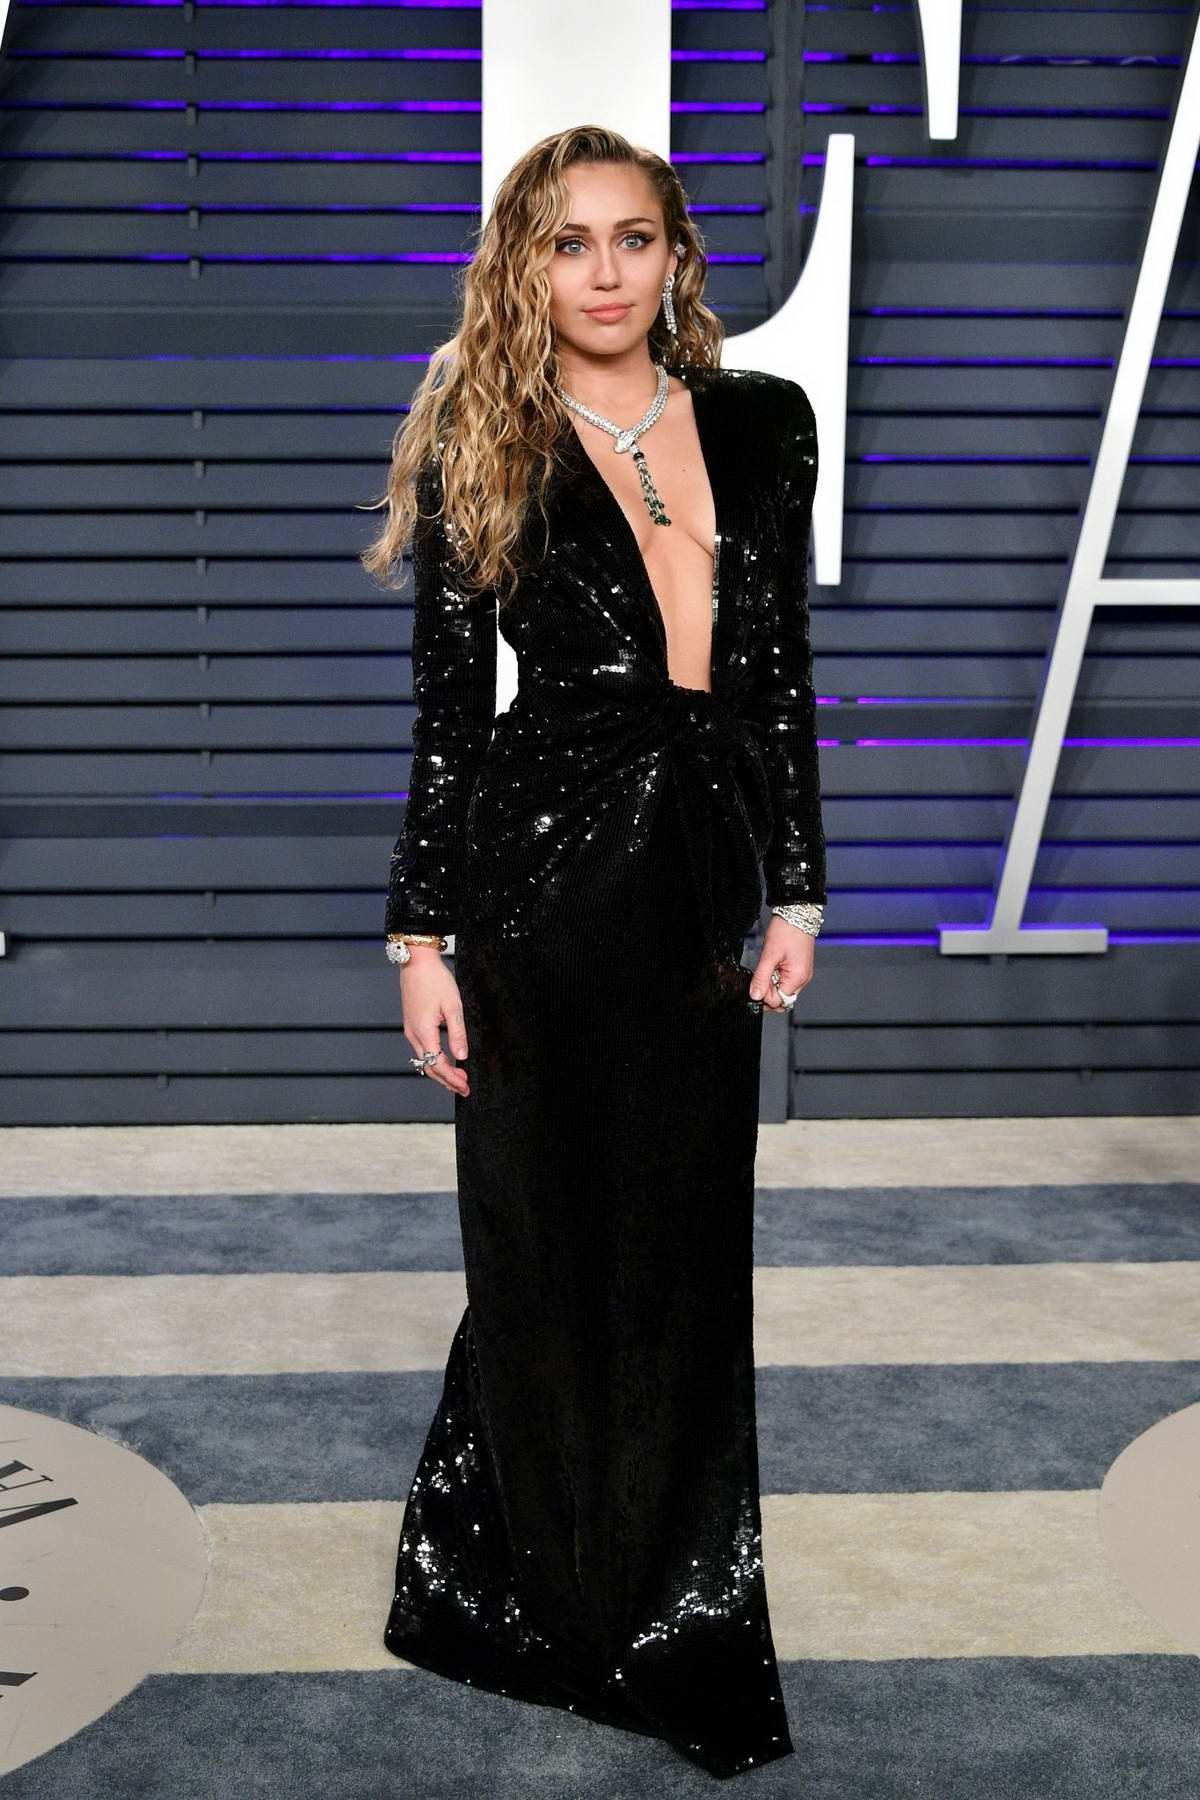 Miley Cyrus attends the Vanity Fair Oscar Party at Wallis Annenberg Center for the Performing Arts in Beverly Hills, California